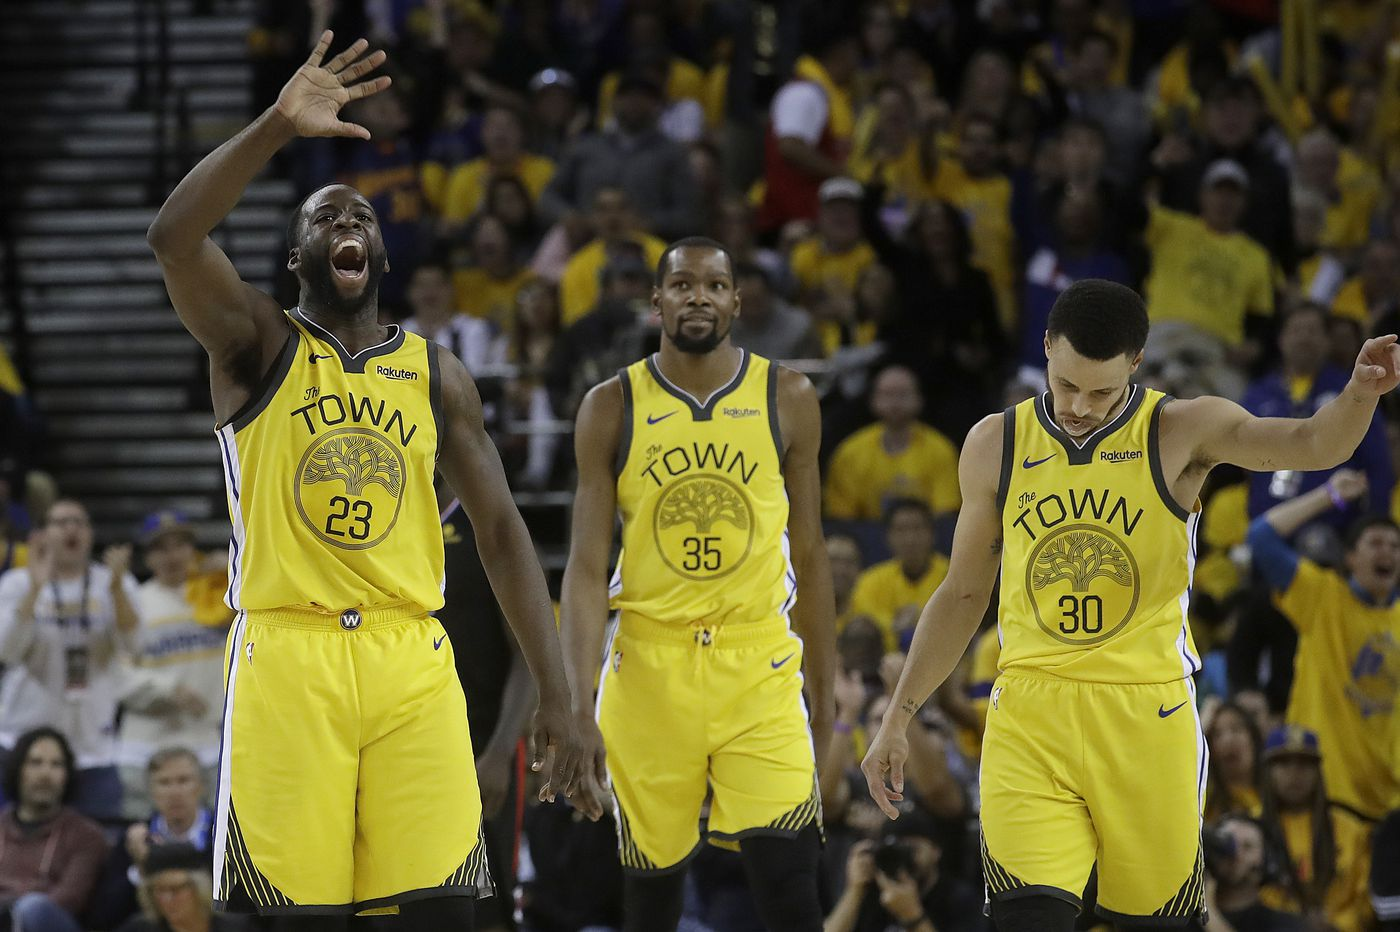 Latest sports news: 'The Last Dance' refuels Draymond Green-Kevin Durant's beef; Yannick Ngakoue's trade value plummets; Eagles donate to COVID-19 relief